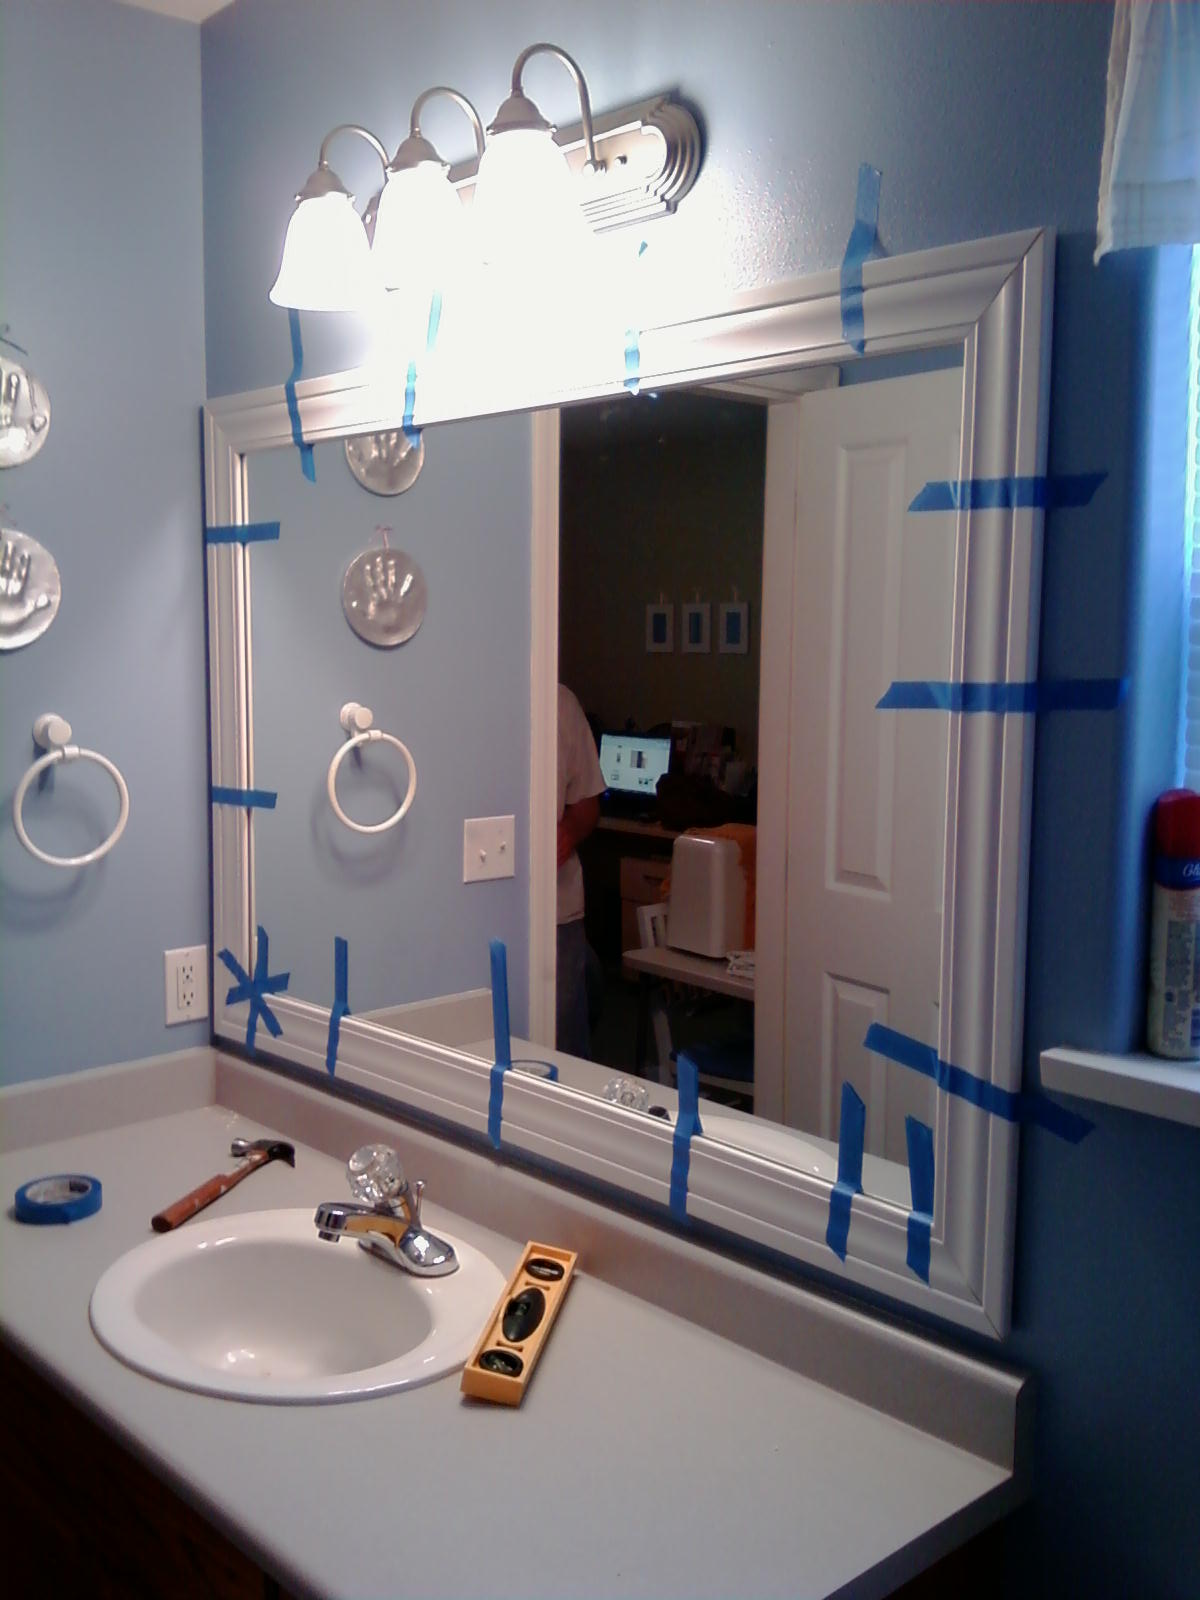 Innovative Framed Bathroom Mirrors Designs Ideas Pictures To Pin On Pinterest